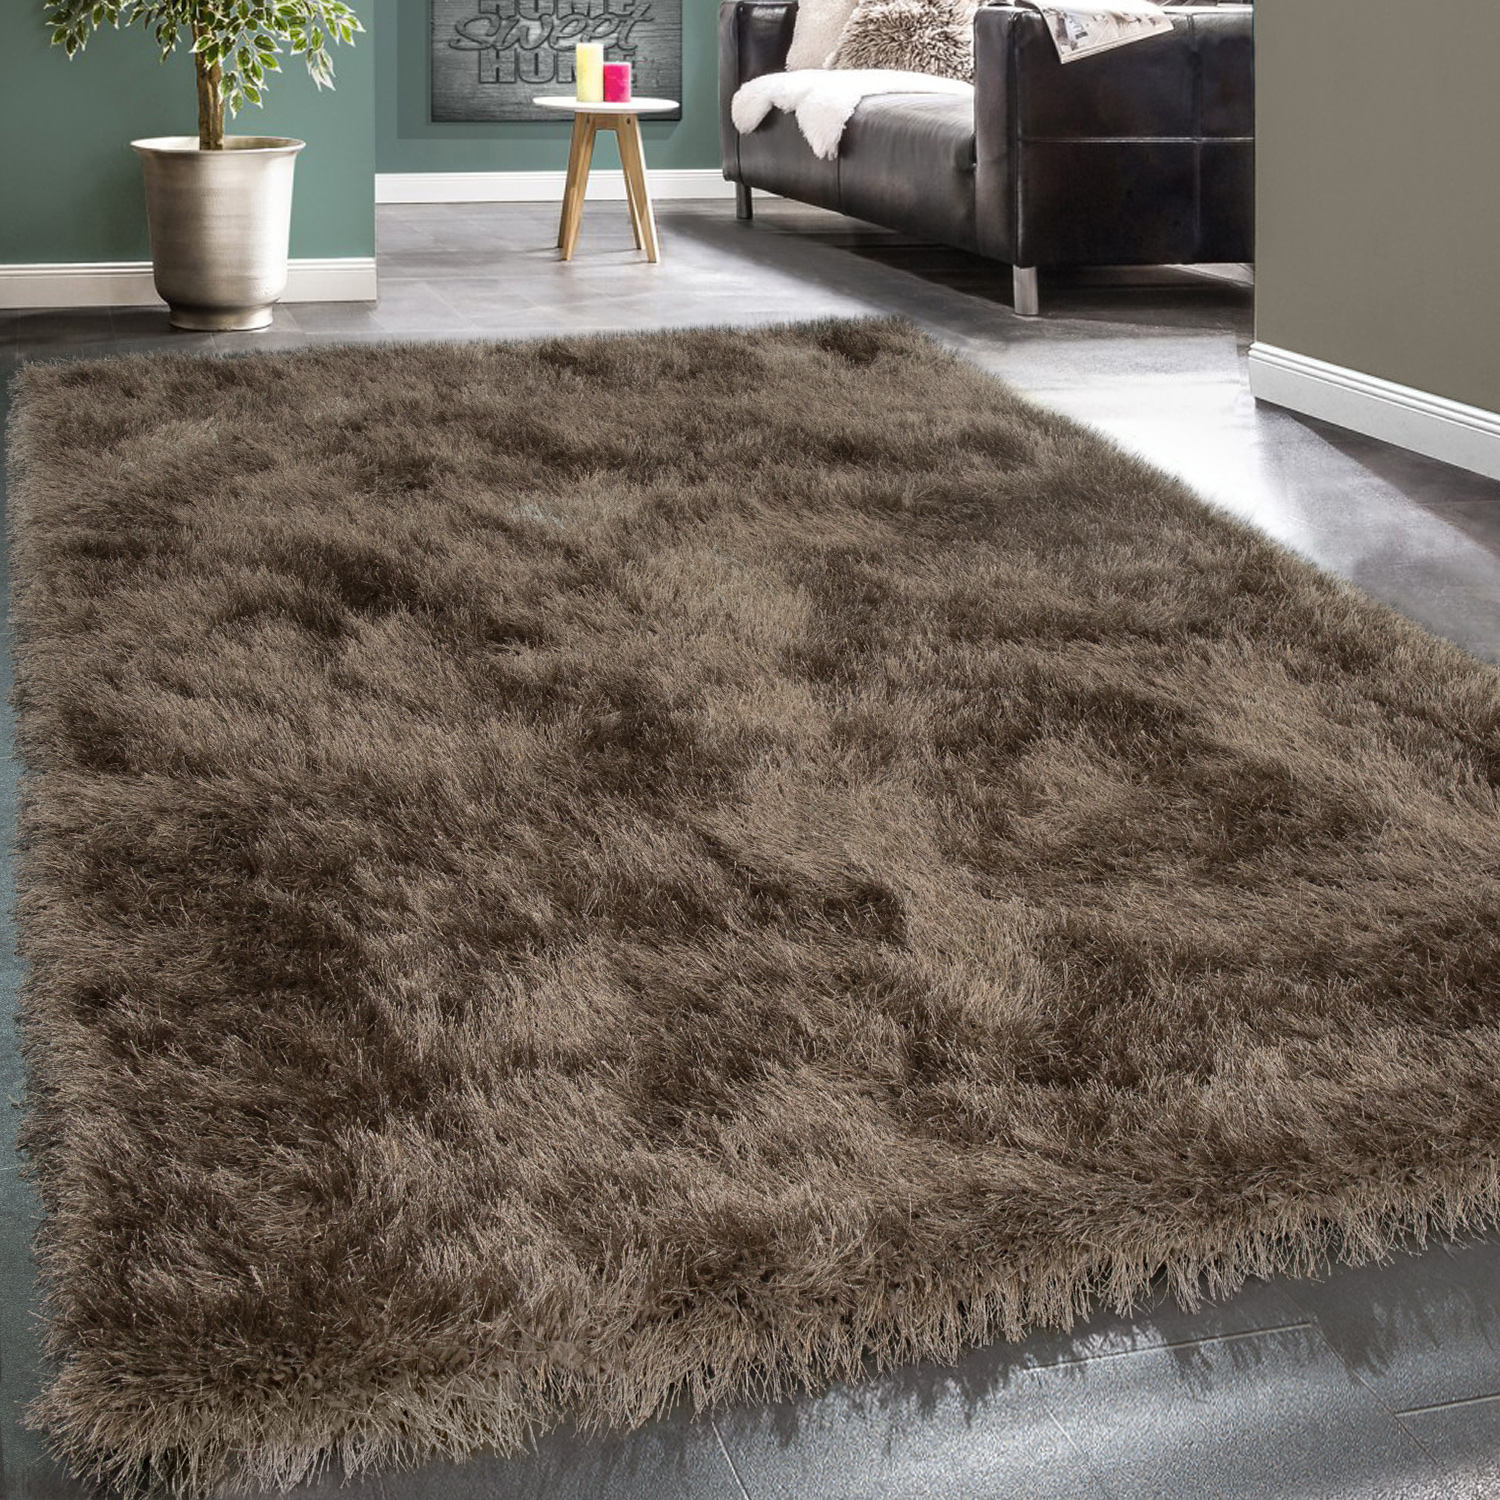 shaggy hochflor teppich modern soft garn mit glitzer in uni braun beige teppiche hochflor teppiche. Black Bedroom Furniture Sets. Home Design Ideas